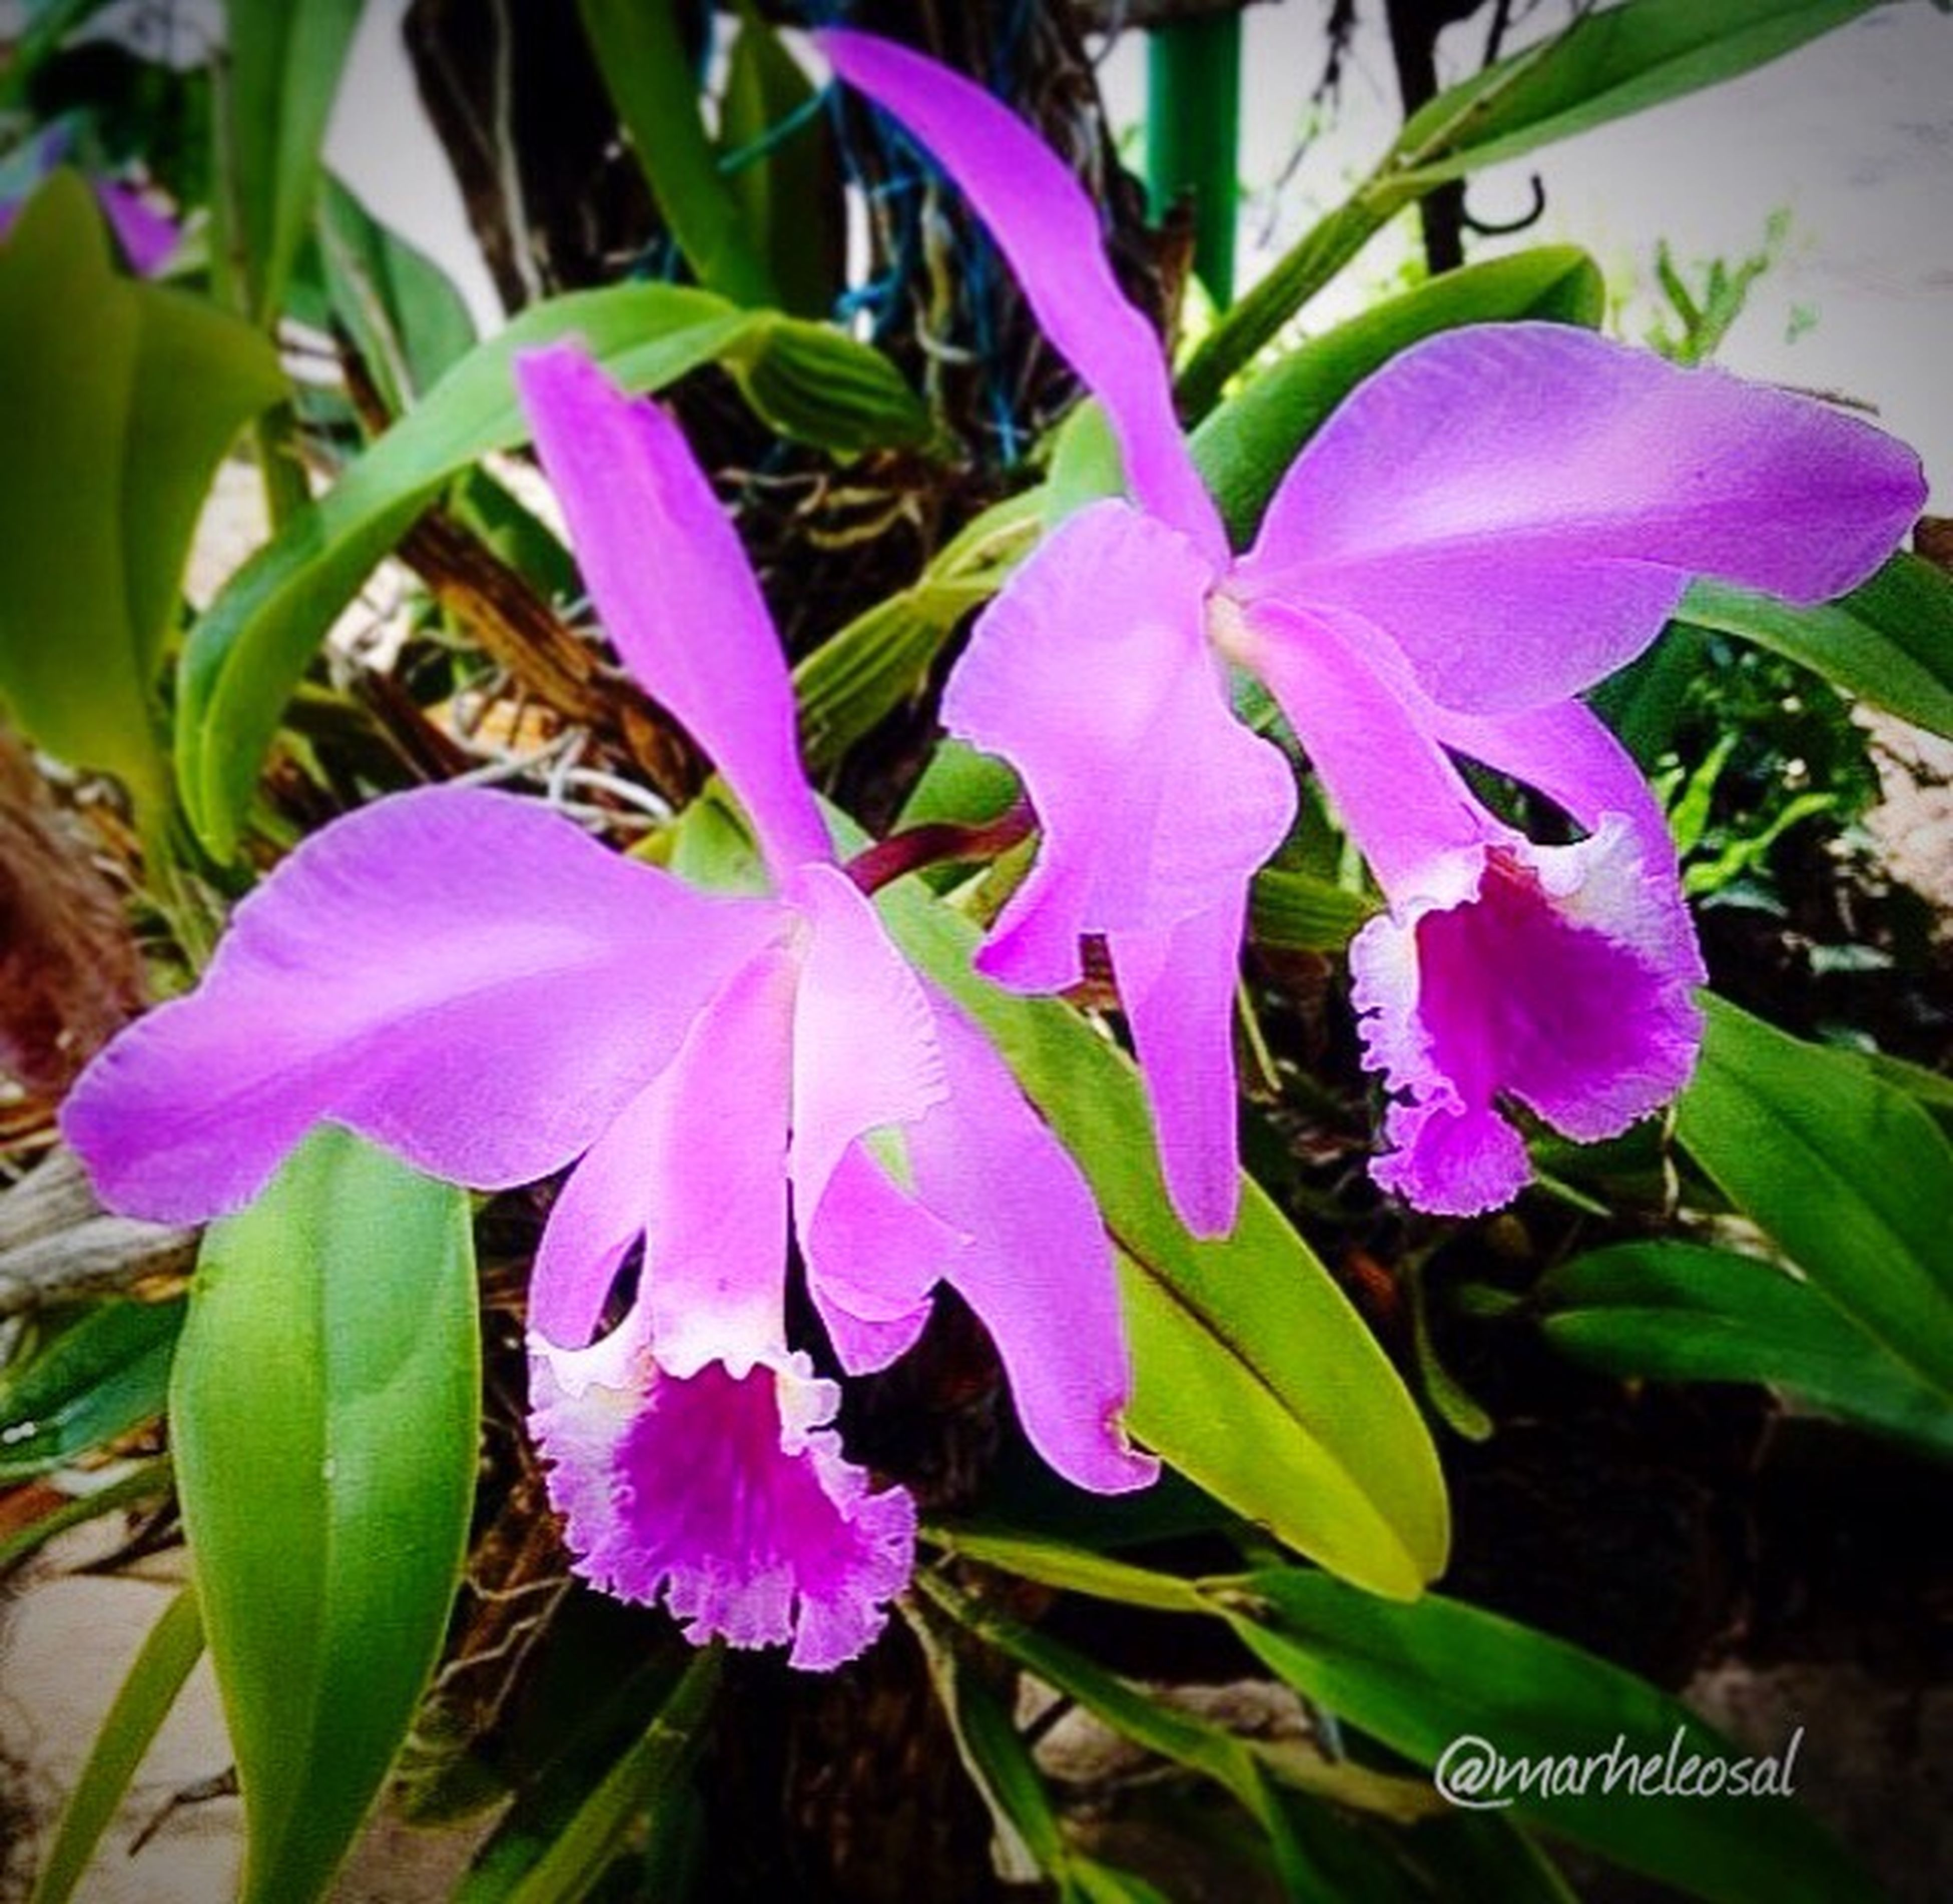 flower, freshness, fragility, growth, purple, petal, close-up, beauty in nature, stem, flower head, in bloom, plant, nature, blossom, botany, springtime, pink color, vibrant color, green color, softness, day, focus on foreground, bloom, green, plant life, no people, growing